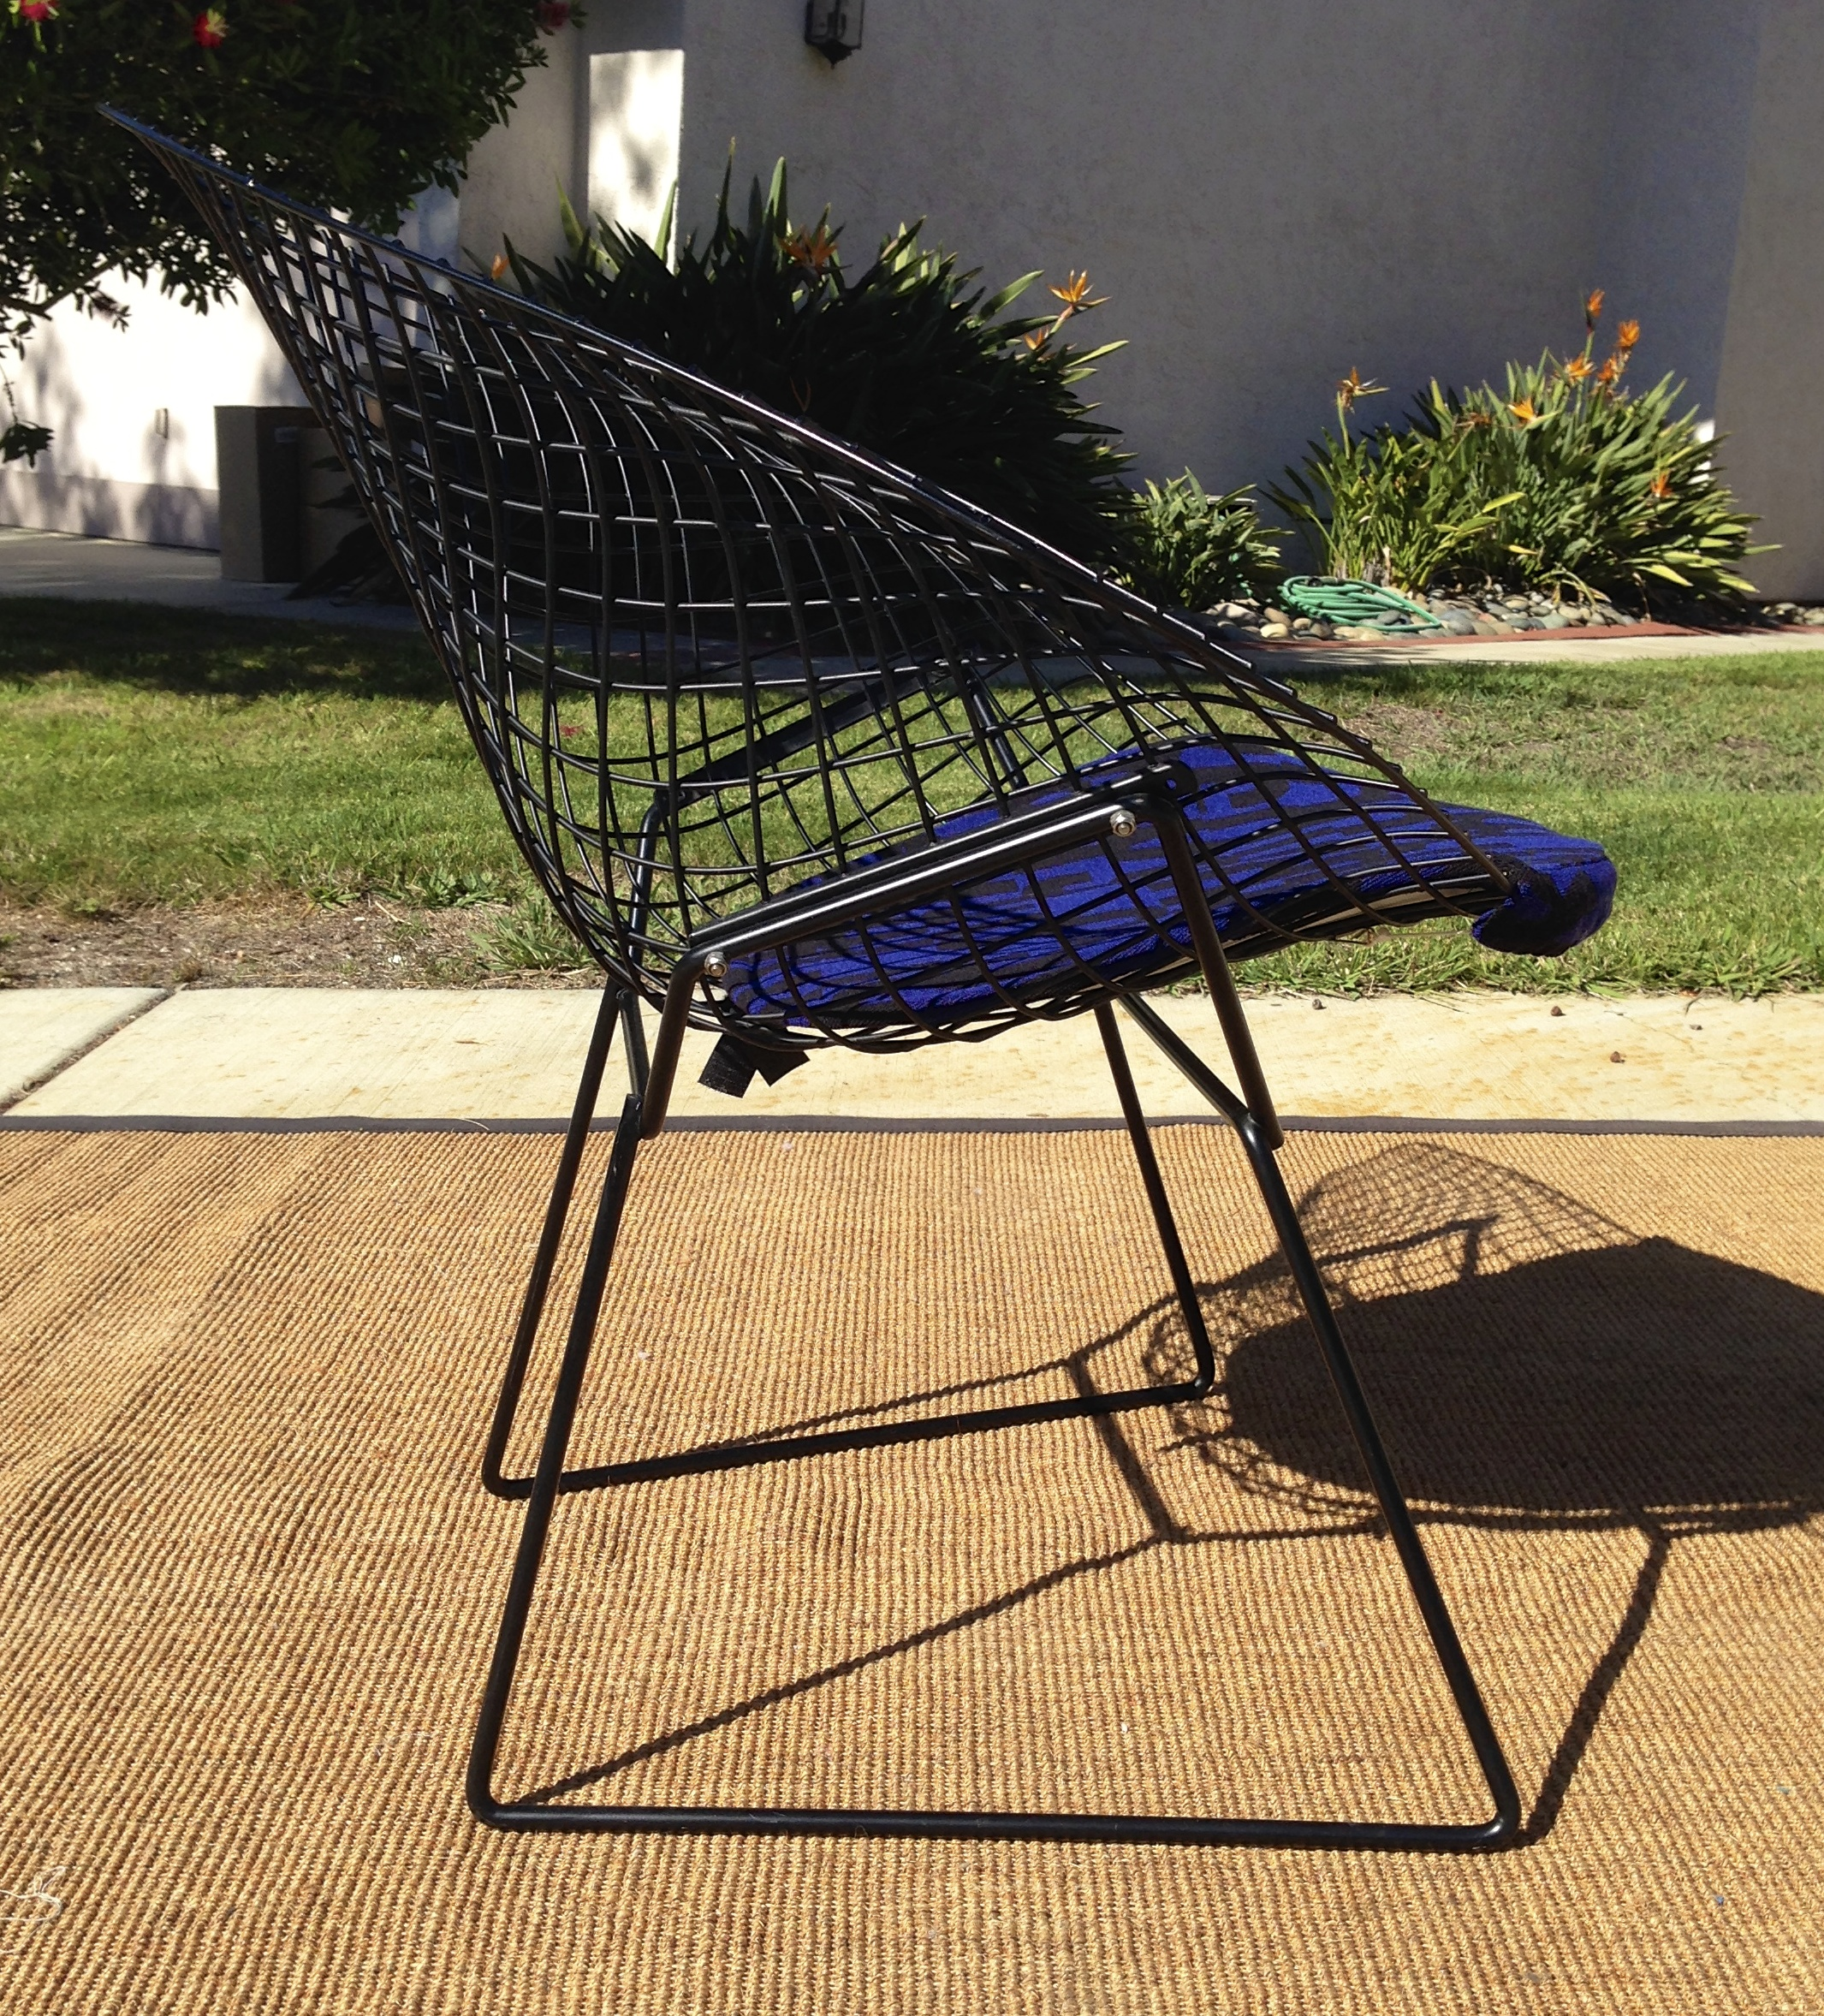 Bertoia diamond chair vintage - One Diamond Lounge Chair In Mat Black In Its Original Condition No Broken Welds No Rust No Structure Damage Great Vintage Condition